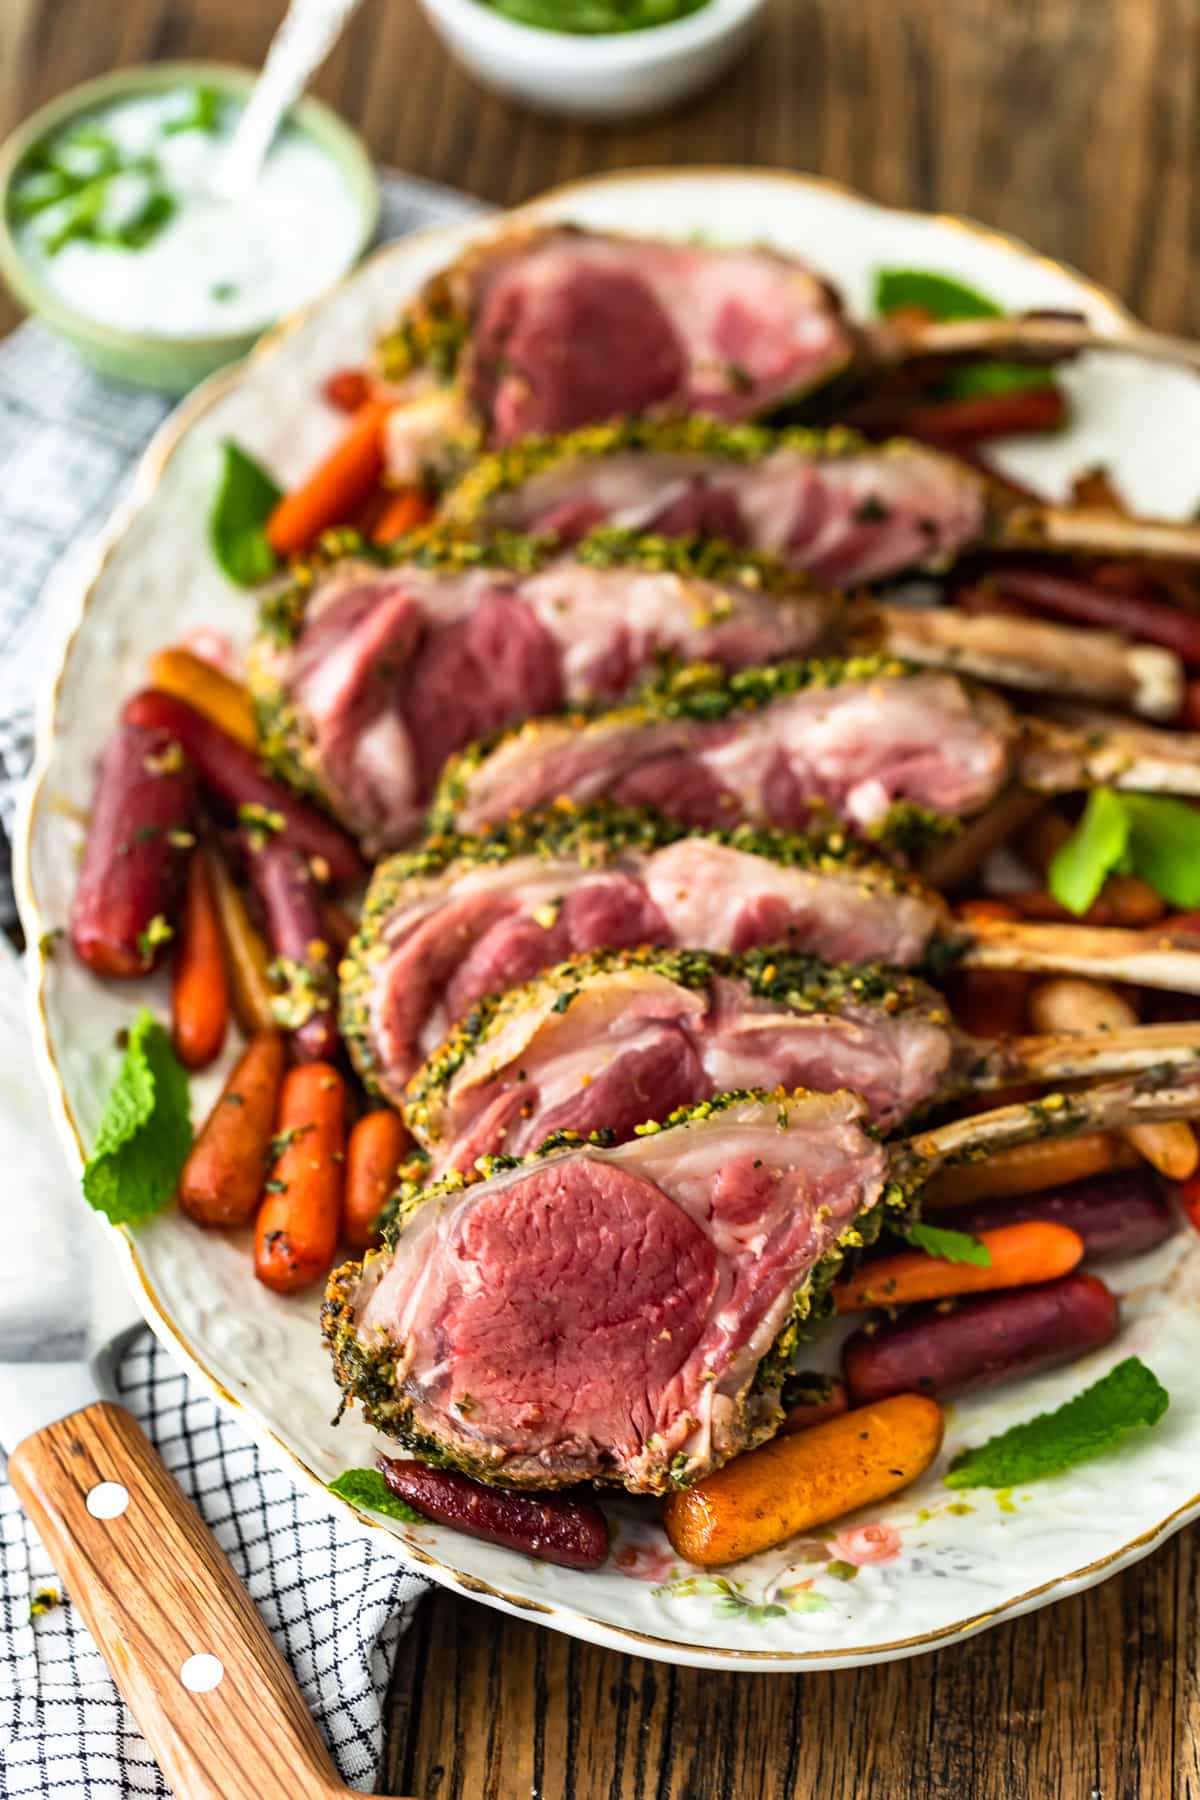 a plate of lamb and carrots